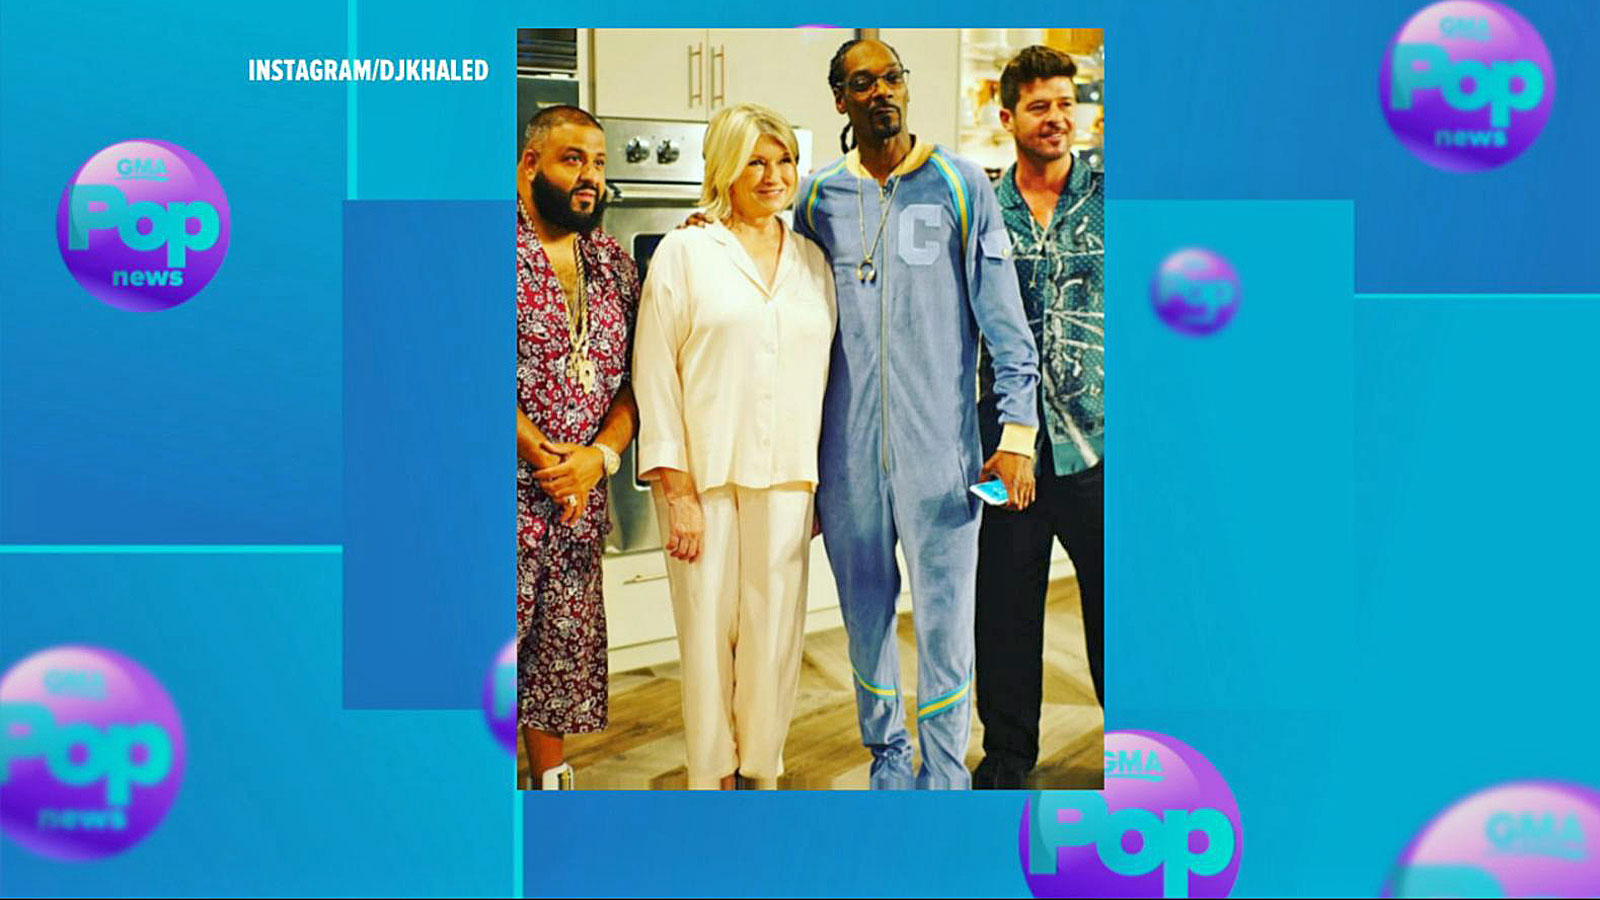 Robin thicke videos at abc news video archive at abcnews video dj khaled robin thicke attend pajama party with snoop dogg and martha stewart nvjuhfo Image collections